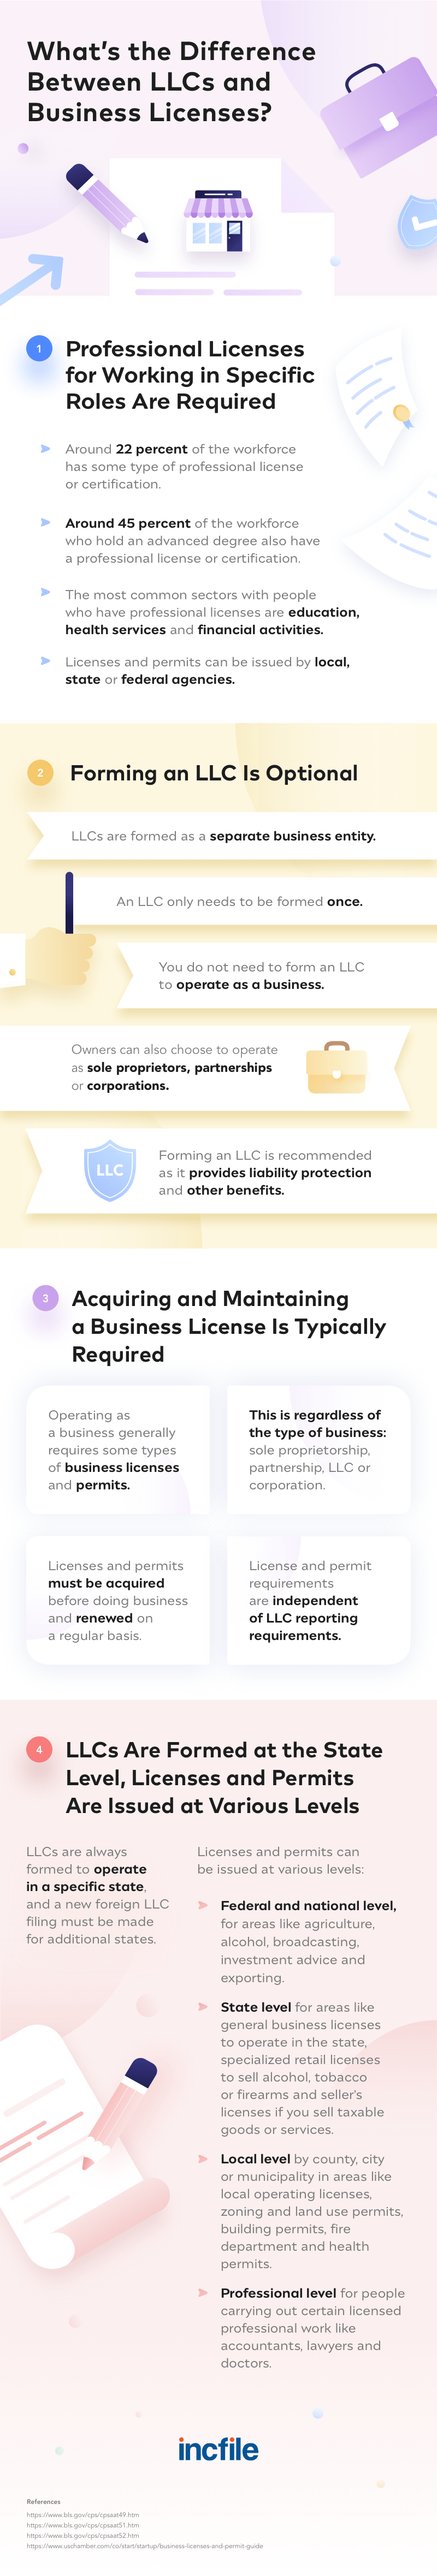 difference between LLCs and business licenses